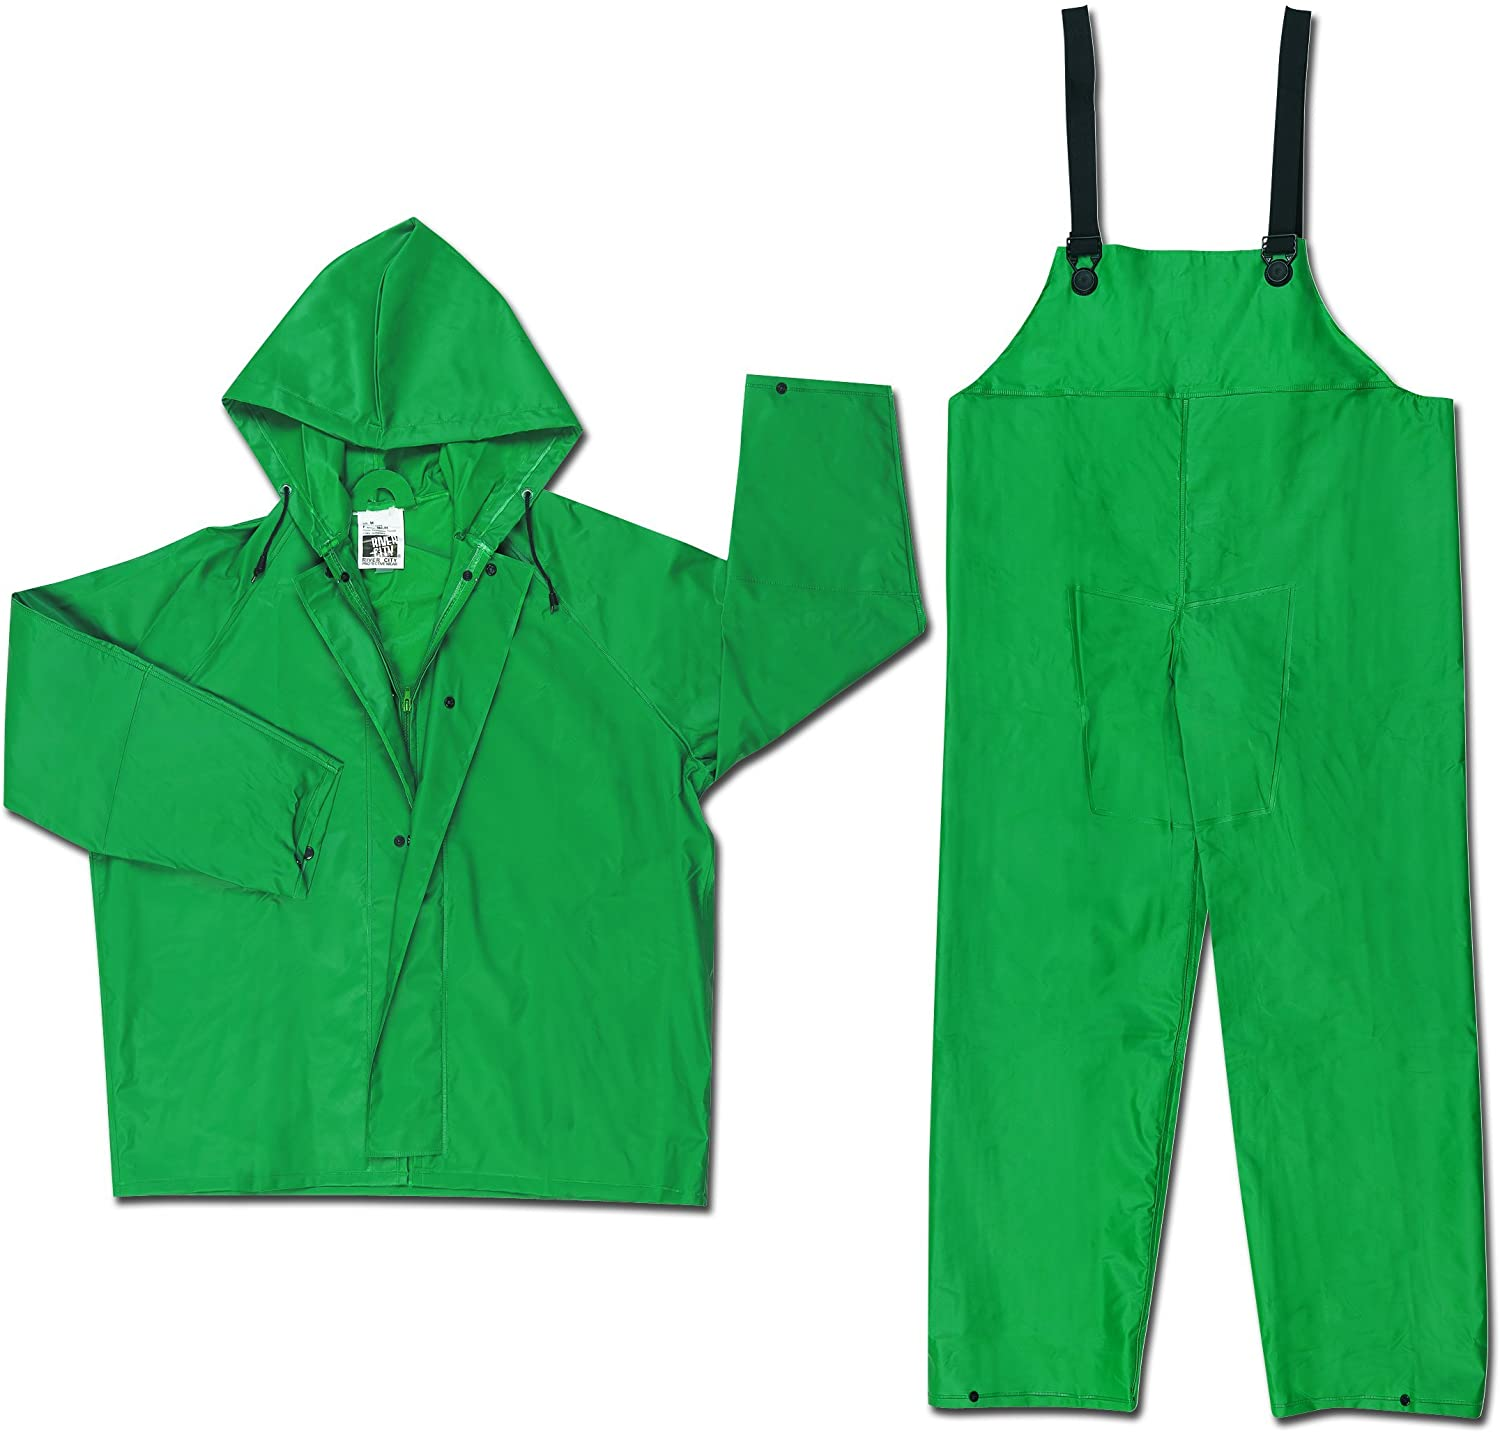 MCR Safety 3882L Dominator PVC/Polyester 2-Piece Rainsuit with Attached Drawstring Hood, Green, Large